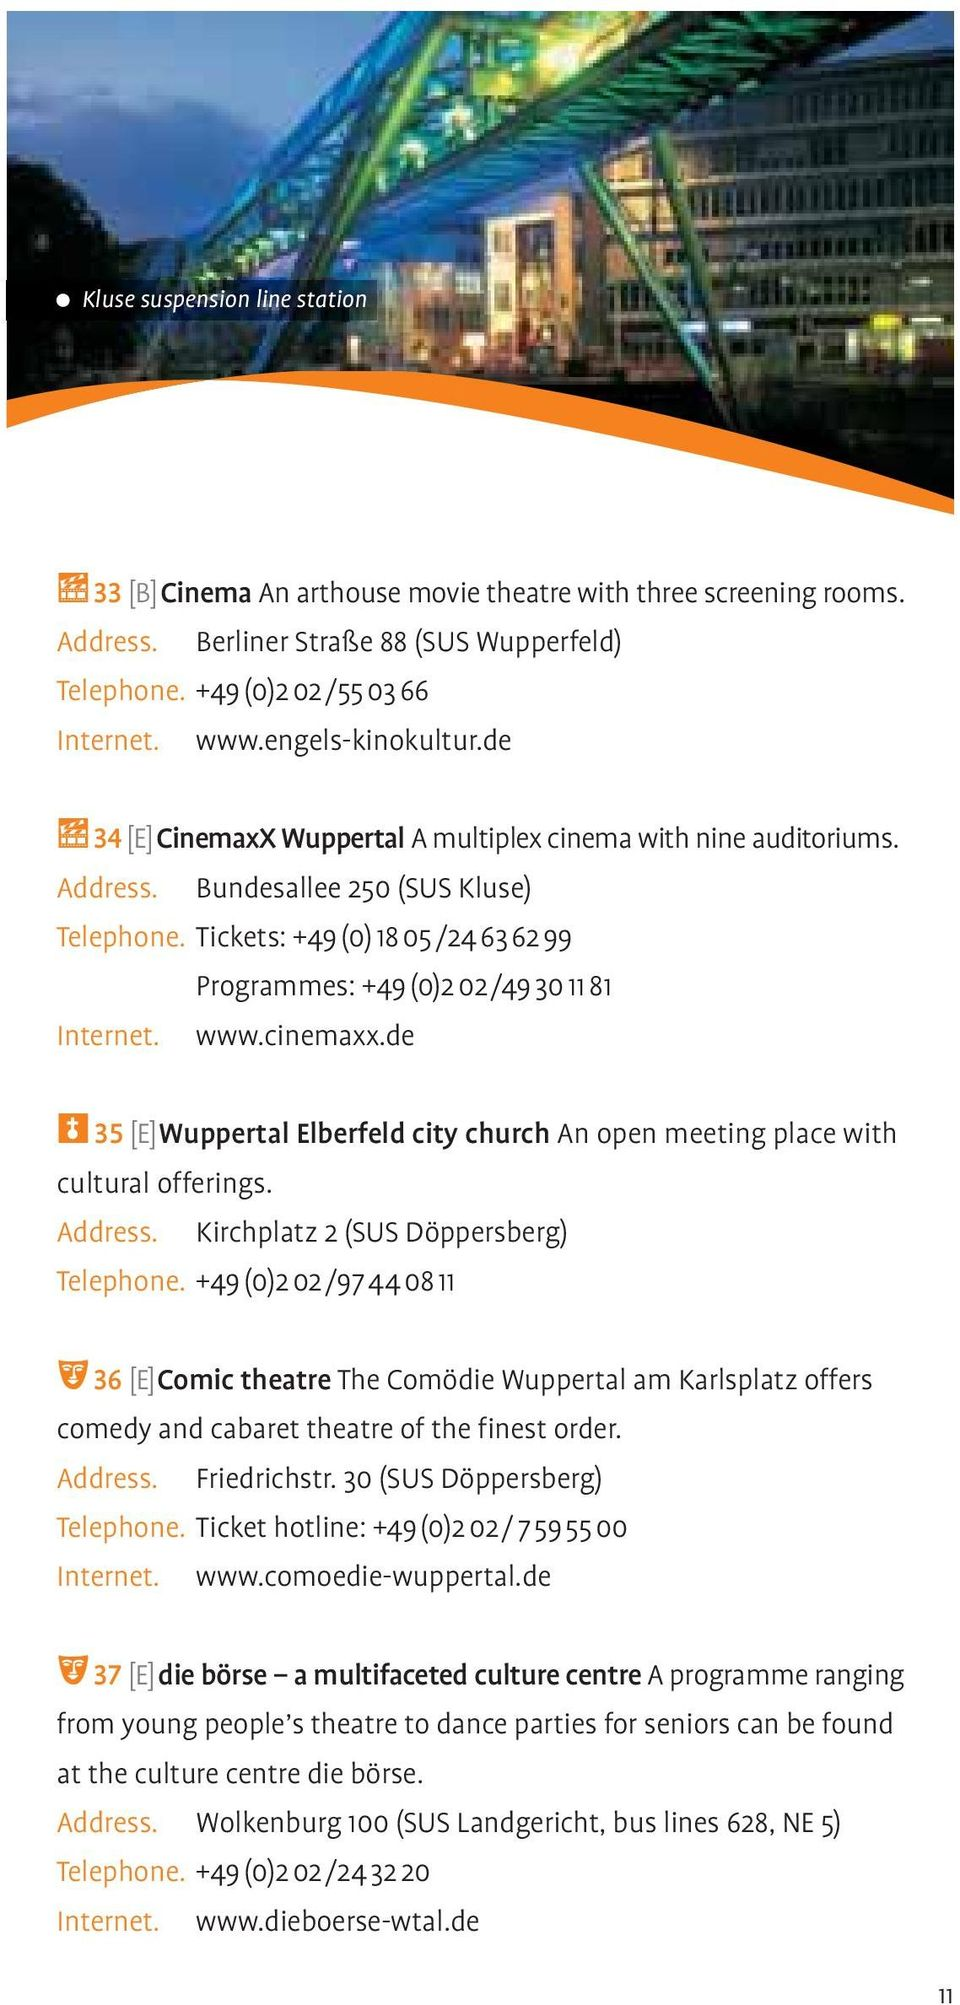 Tickets: +49 (0) 18 05 /24 63 62 99 Programmes: +49 (0)2 02 /49 30 11 81 Internet. www.cinemaxx.de 35 [E] Wuppertal Elberfeld city church An open meeting place with cultural offerings. Address.